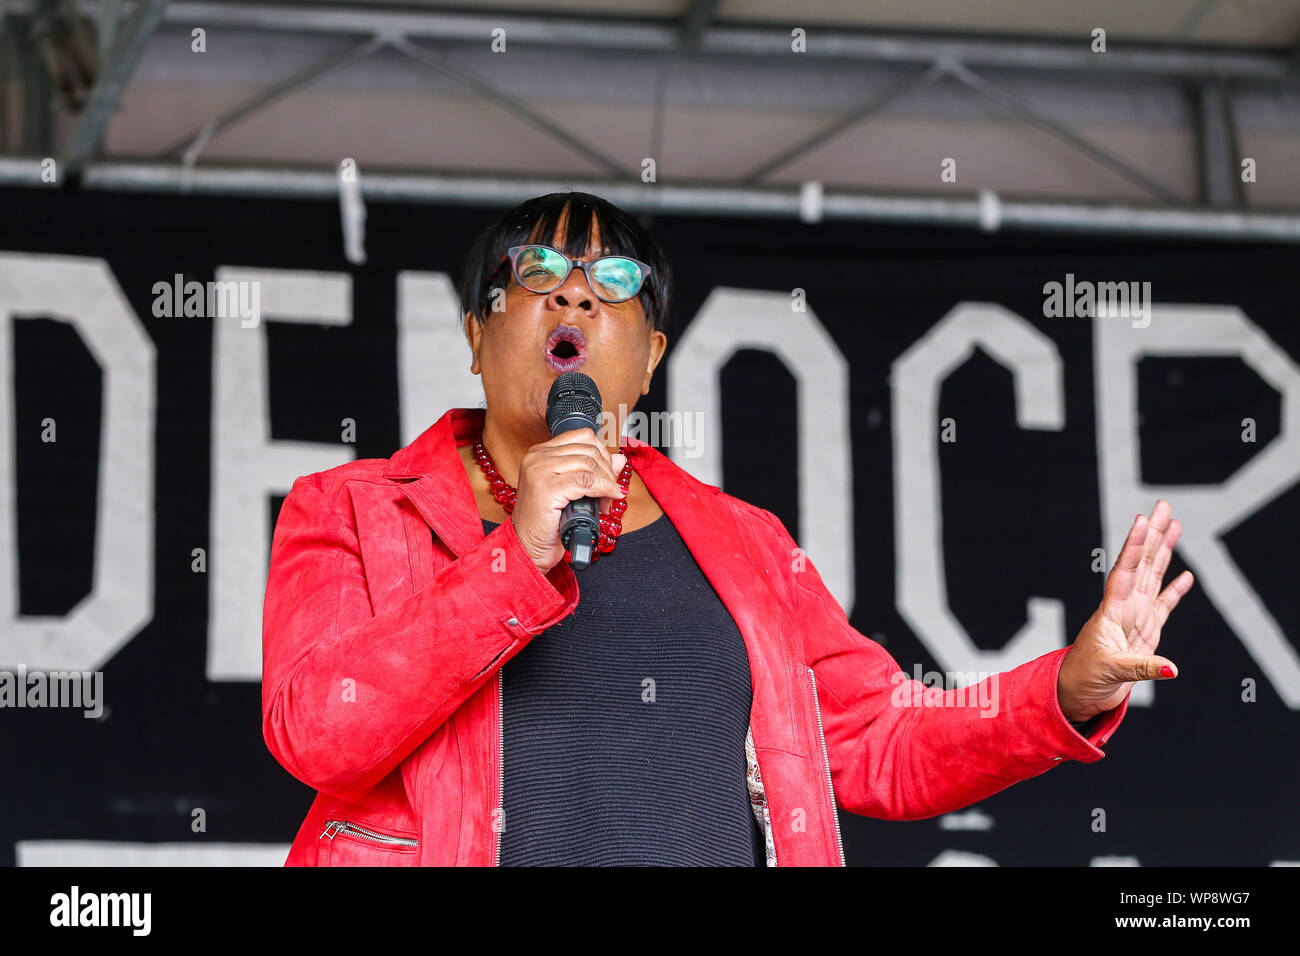 London, UK. 07th Sep, 2019. Diane Abbott, Shadow Home Secretary speaks during the protest.The campaigners are demonstrating to oppose the British Prime Minister Boris Johnson's plans to suspend UK Parliament until October 14. Credit: SOPA Images Limited/Alamy Live News Stock Photo